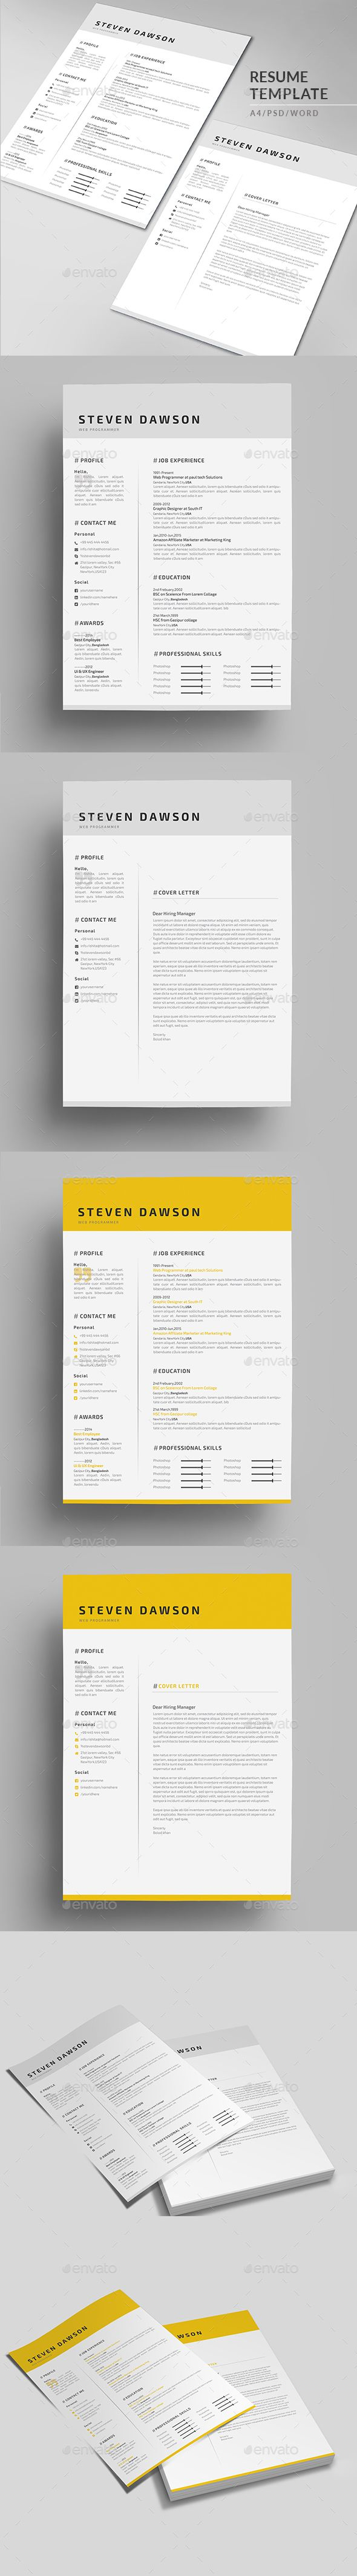 How To Write An Objective On A Resume  Best Resume Templates Images On Pinterest Free Job Resume Template Pdf with Staffing Coordinator Resume Resume  Resumes Stationery Good Looking Resume Pdf